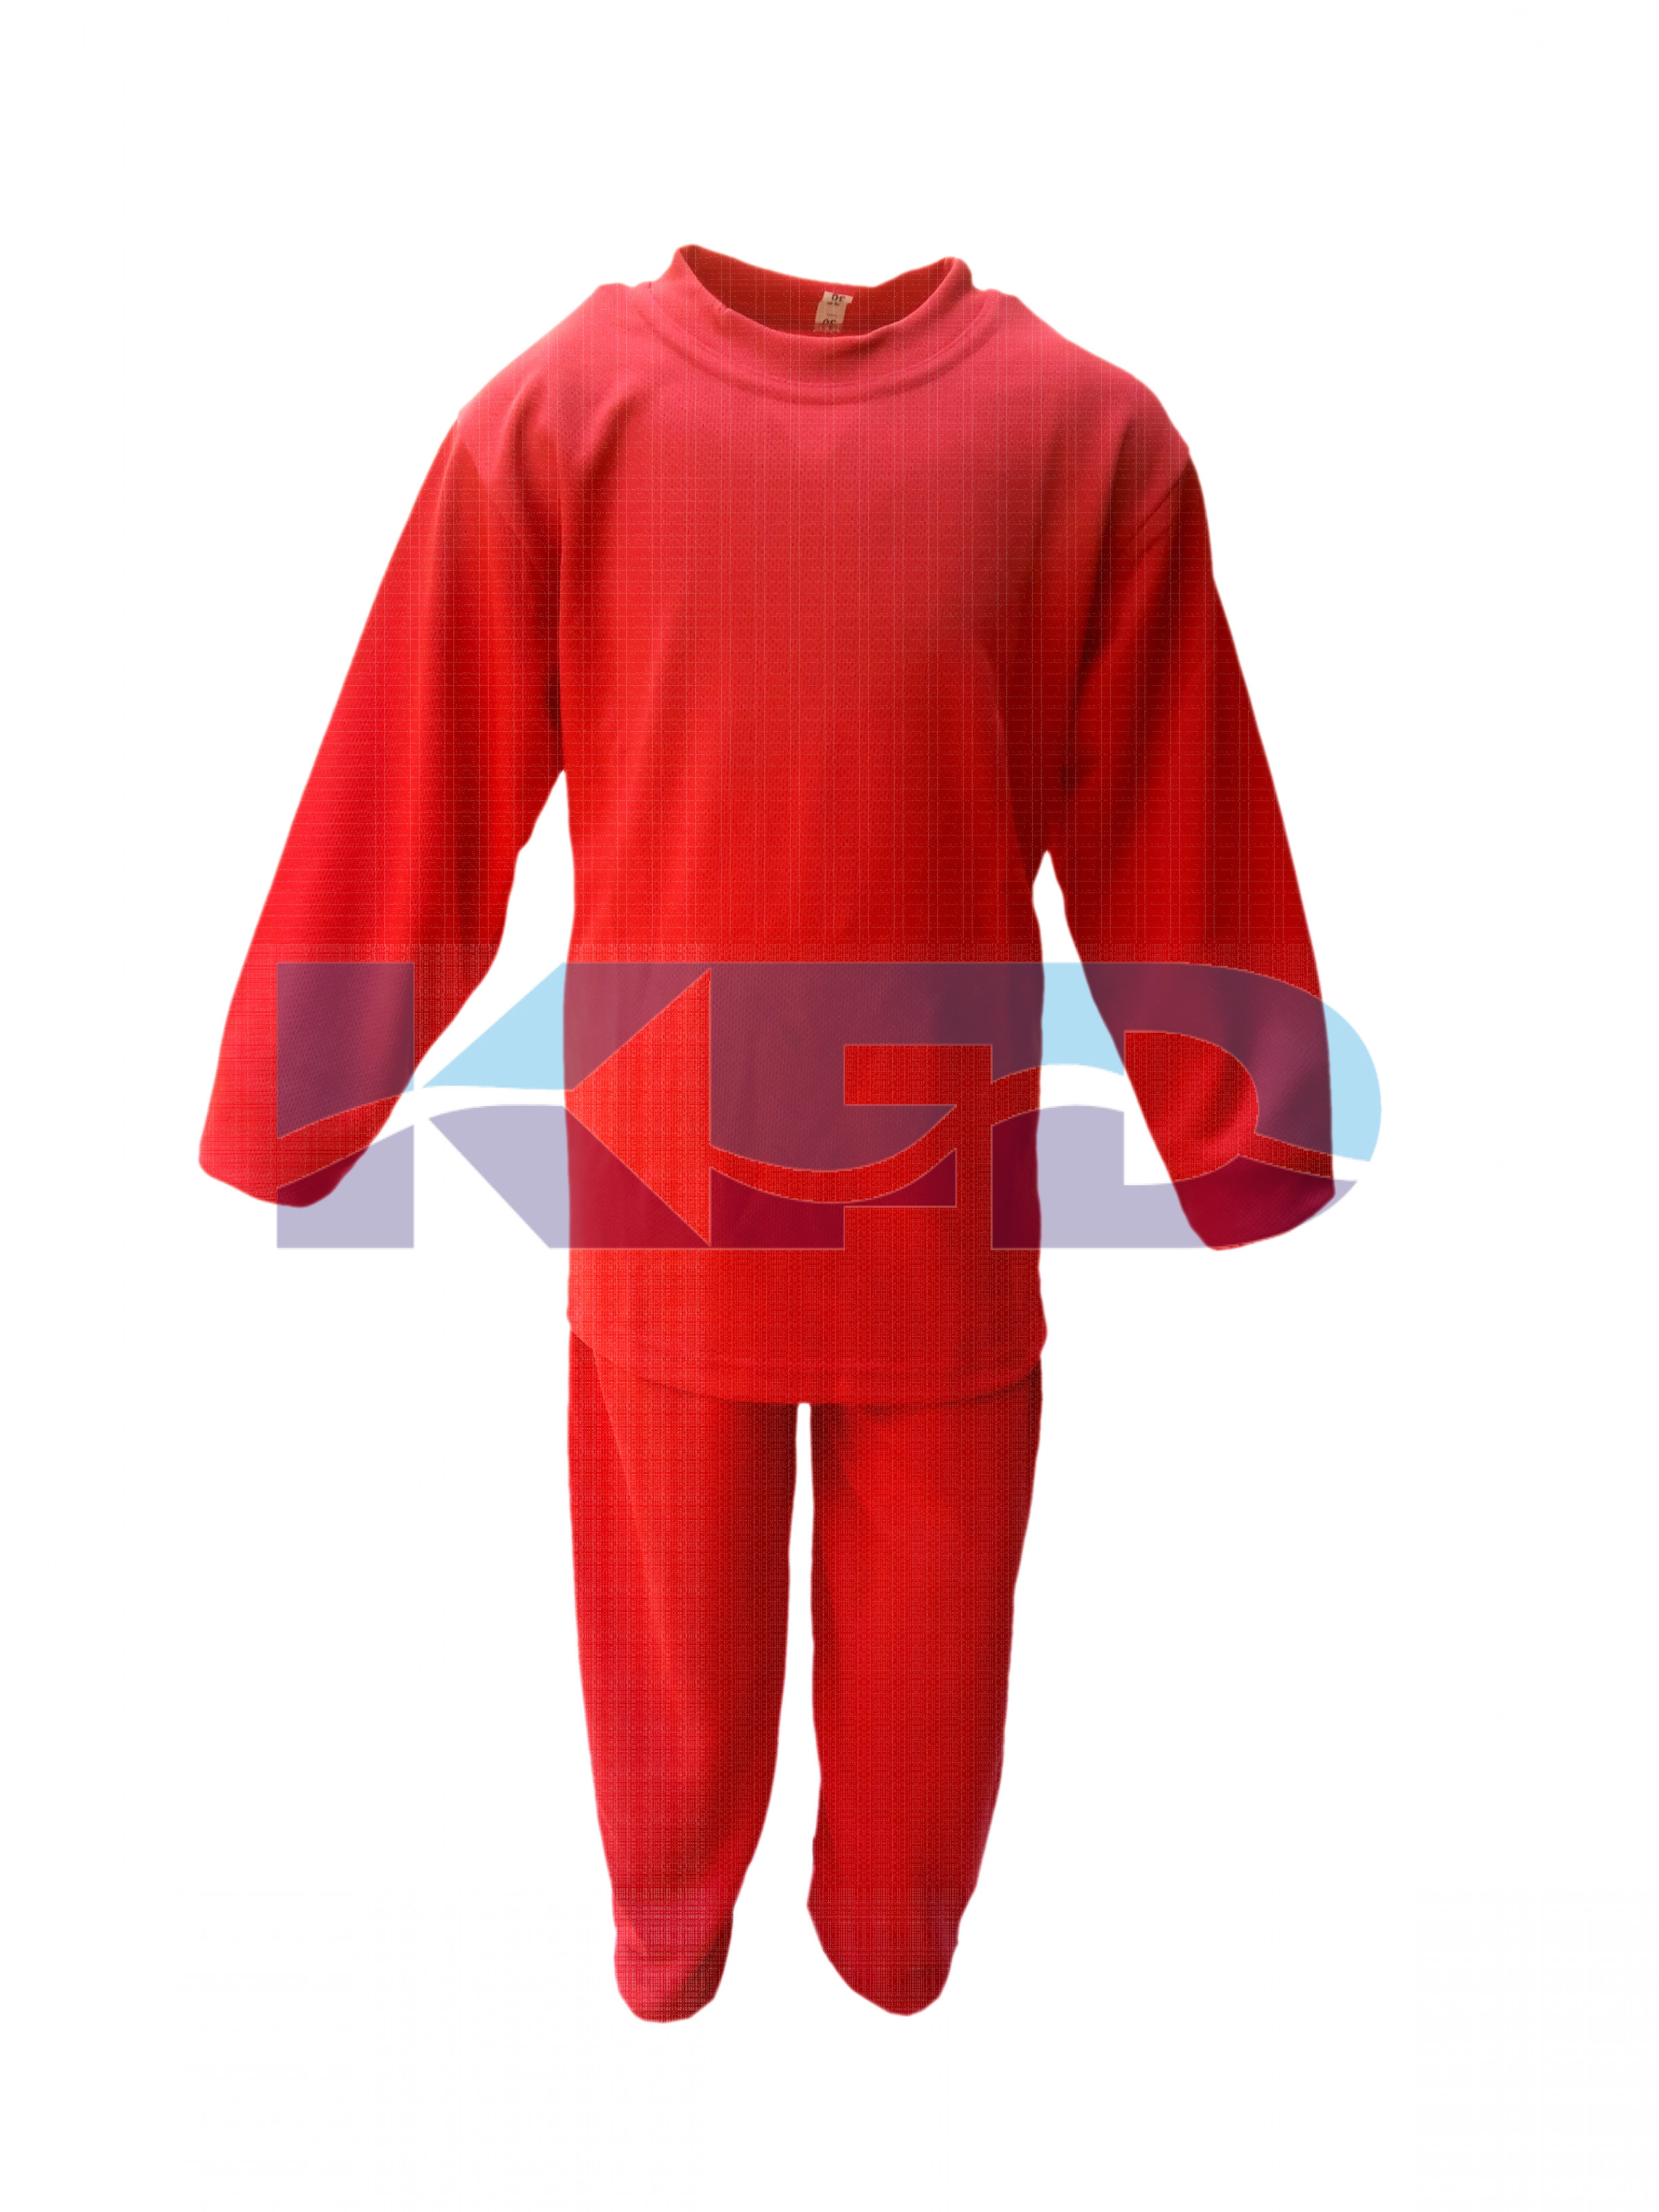 Track Suite RedColor fancy dress for kids,Costume for School Annual function/Theme Party/Competition/Stage Shows/Birthday Party Dress